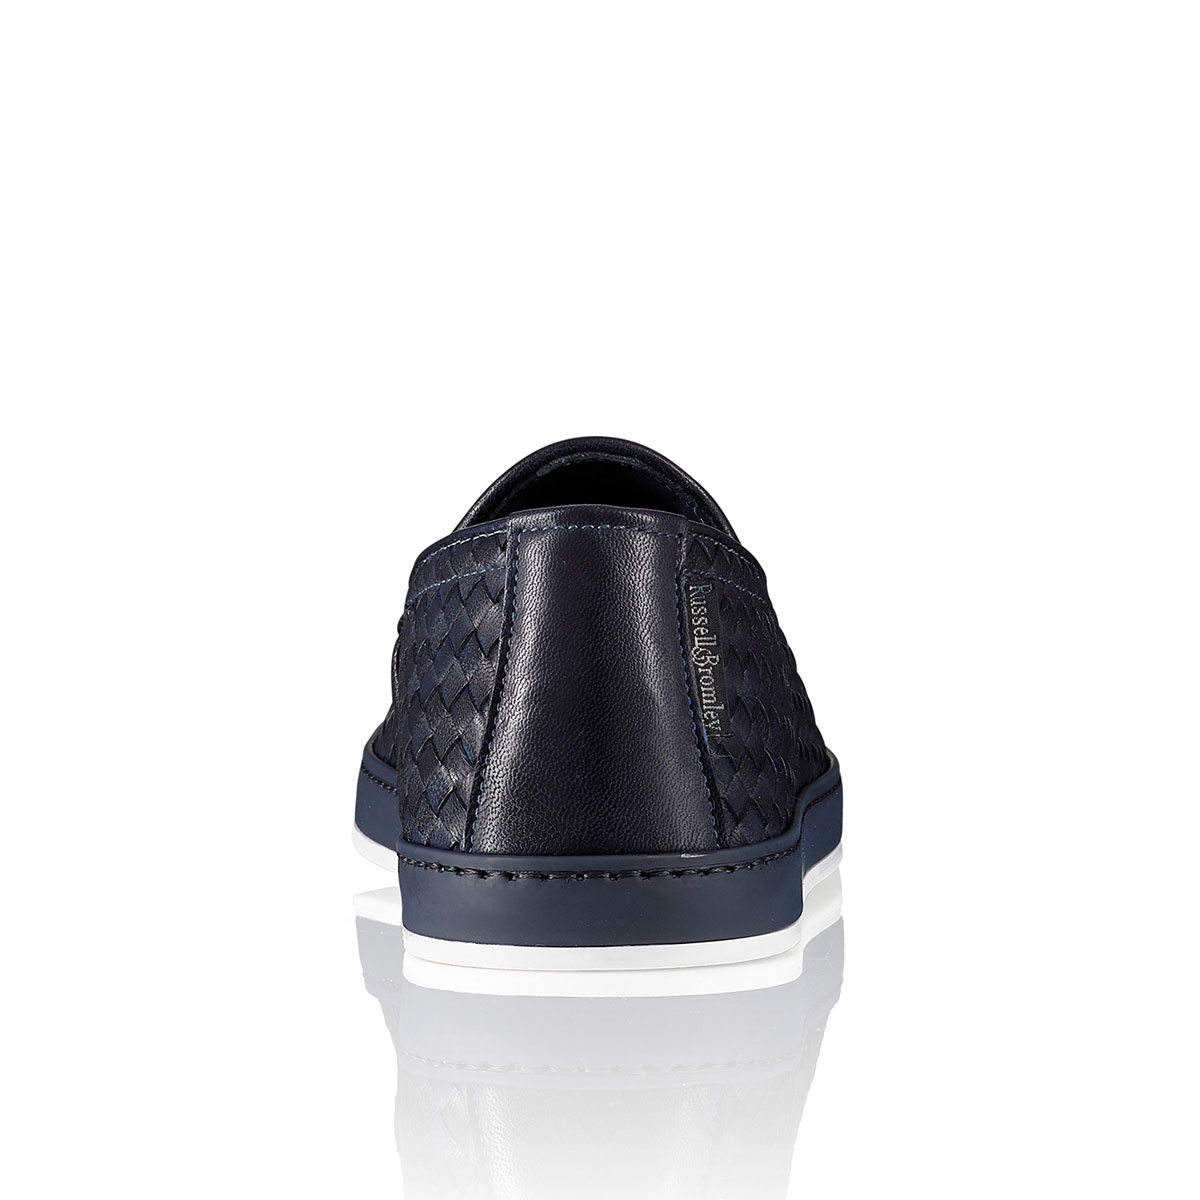 Russell and Bromley ANTIBES Woven Slip-On Sneaker